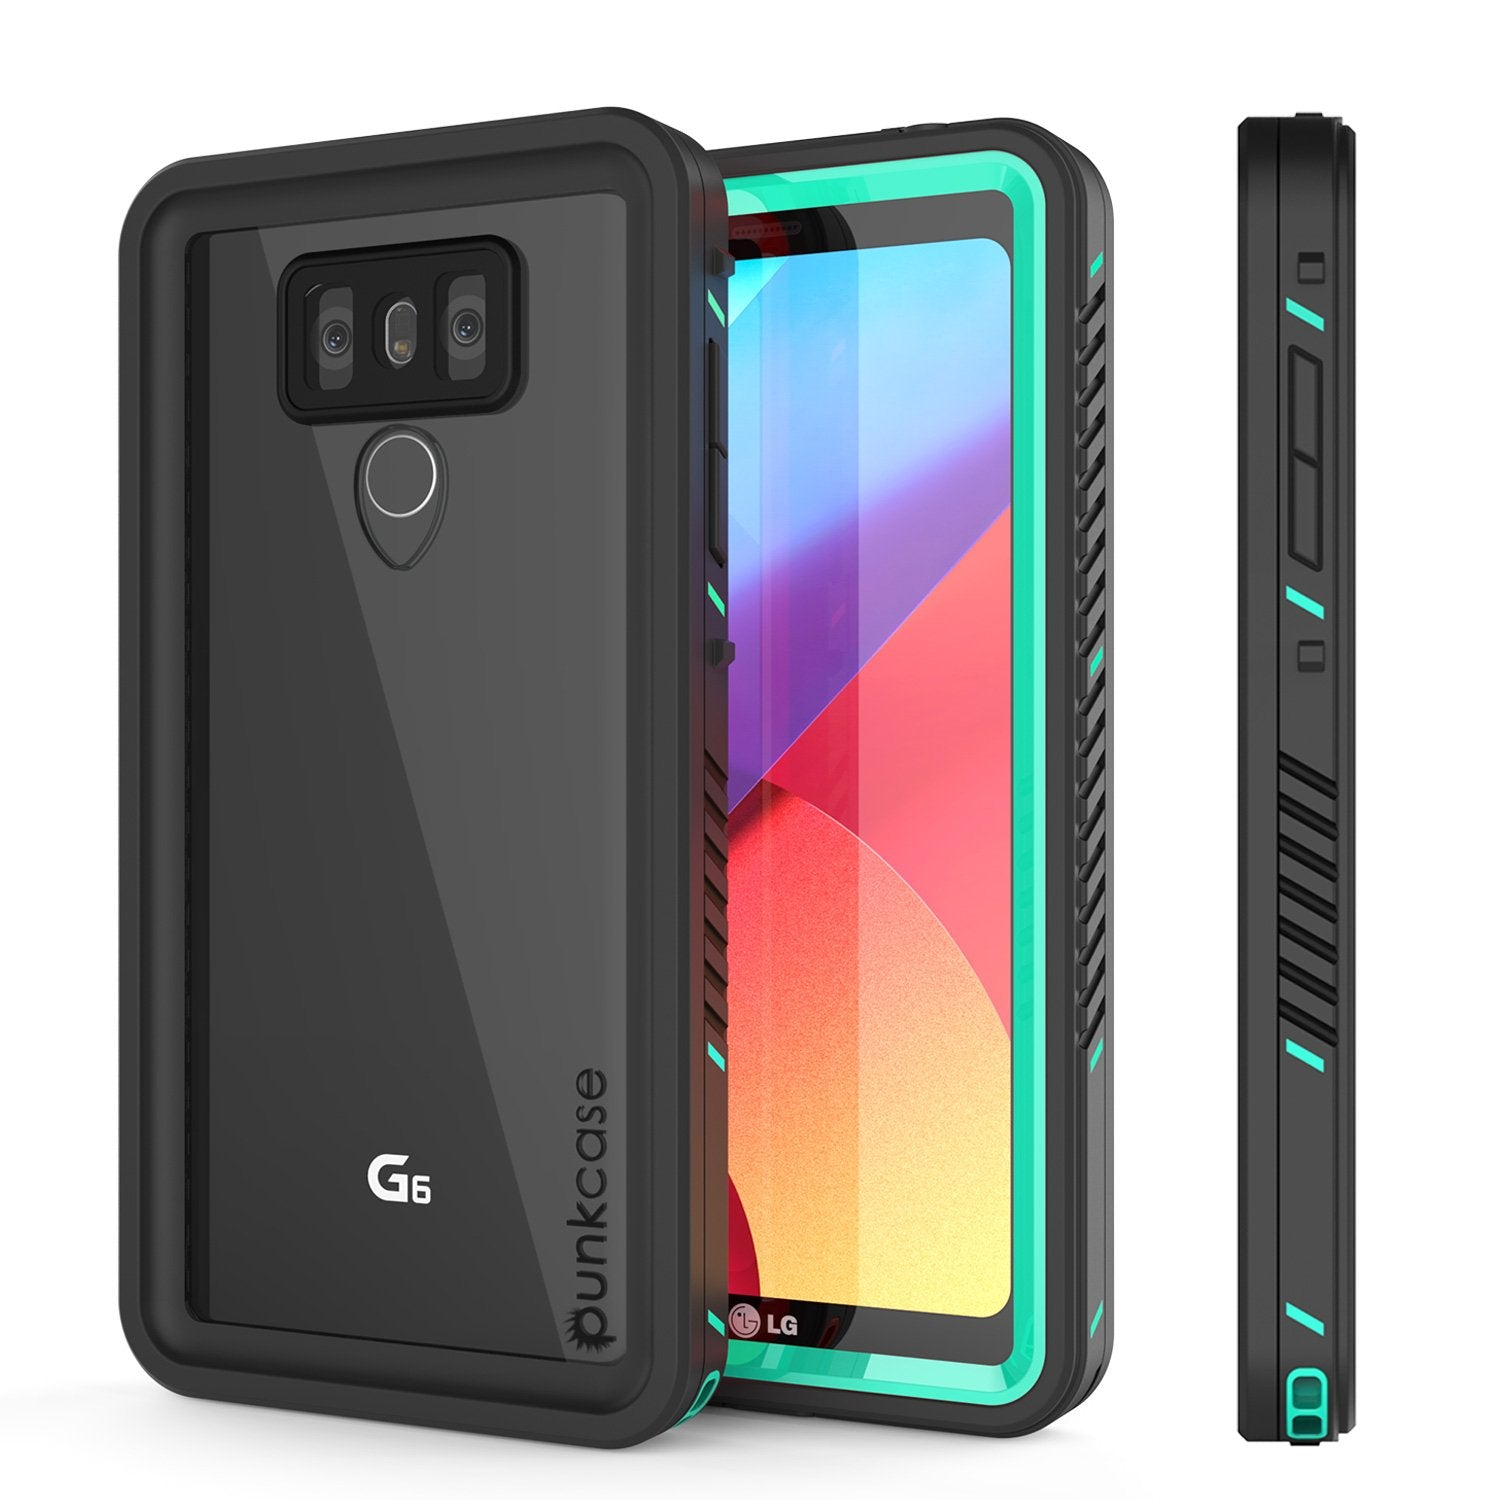 LG G6 Waterproof Case, Punkcase [Extreme Series] [Slim Fit] [IP68 Certified] [Shockproof] [Snowproof] [Dirproof] Armor Cover W/ Built In Screen Protector for LG G6 [TEAL]